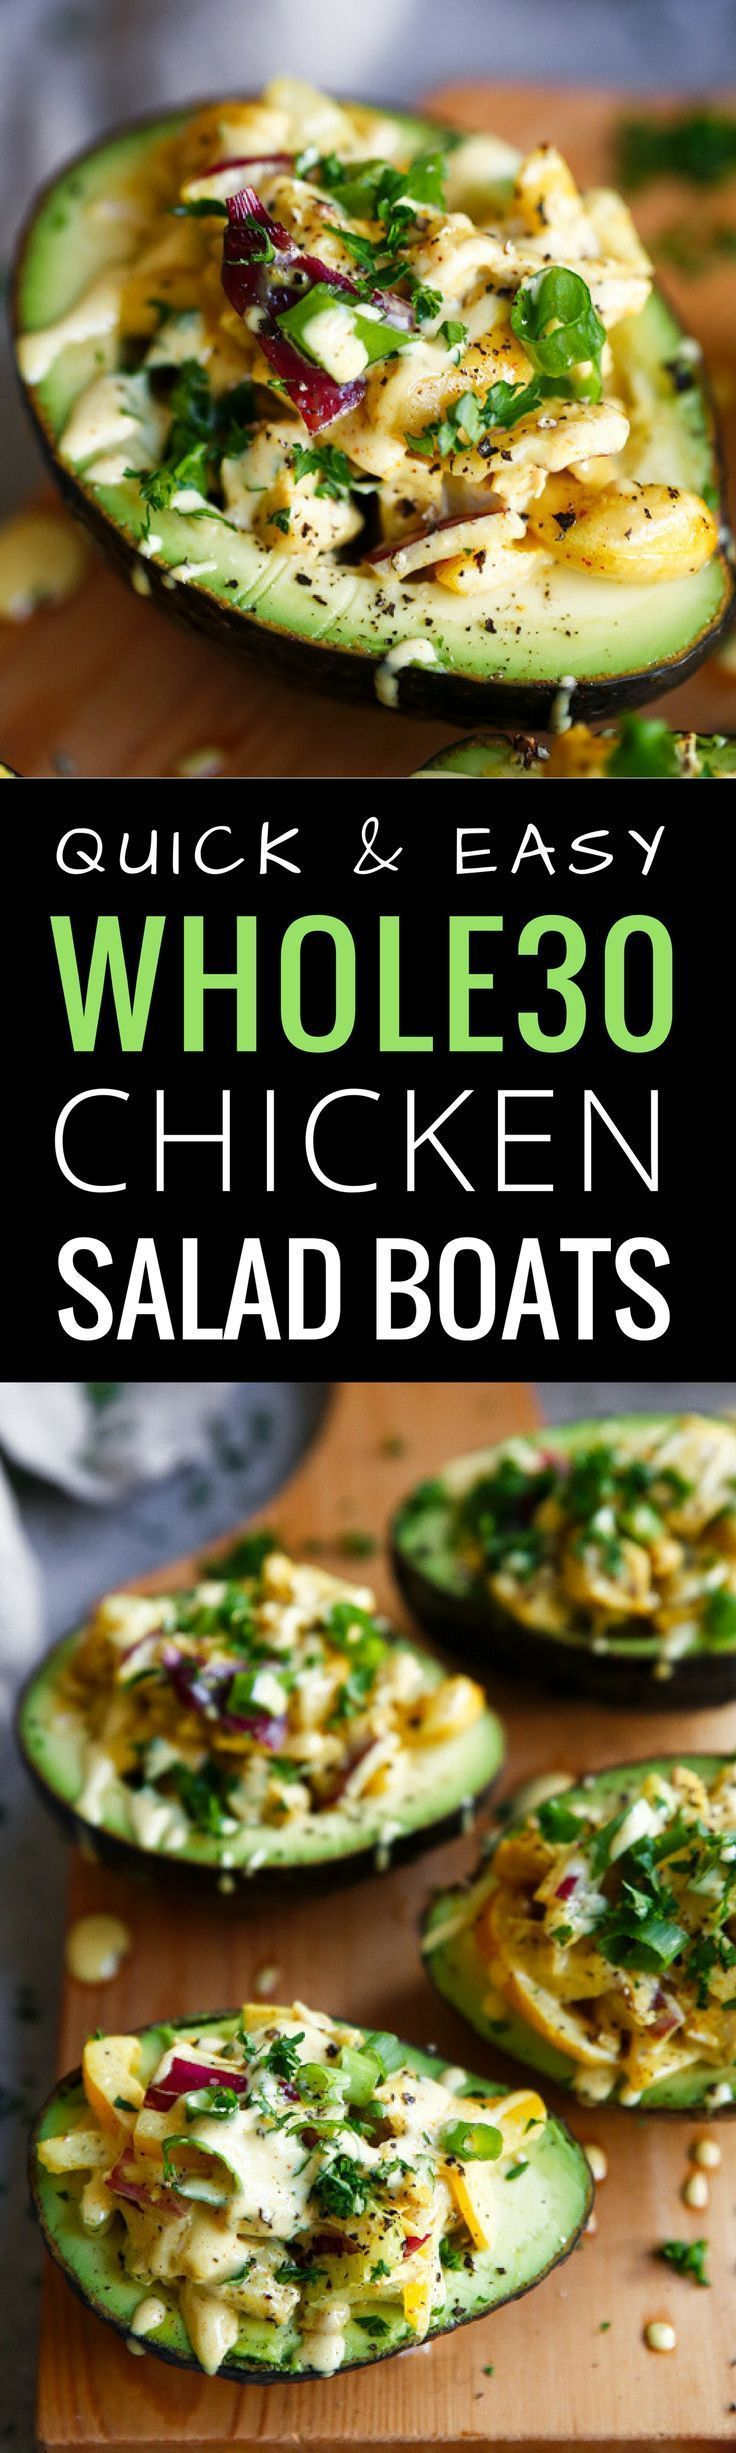 Avocado chicken salad boats | | healthy avocado recipes